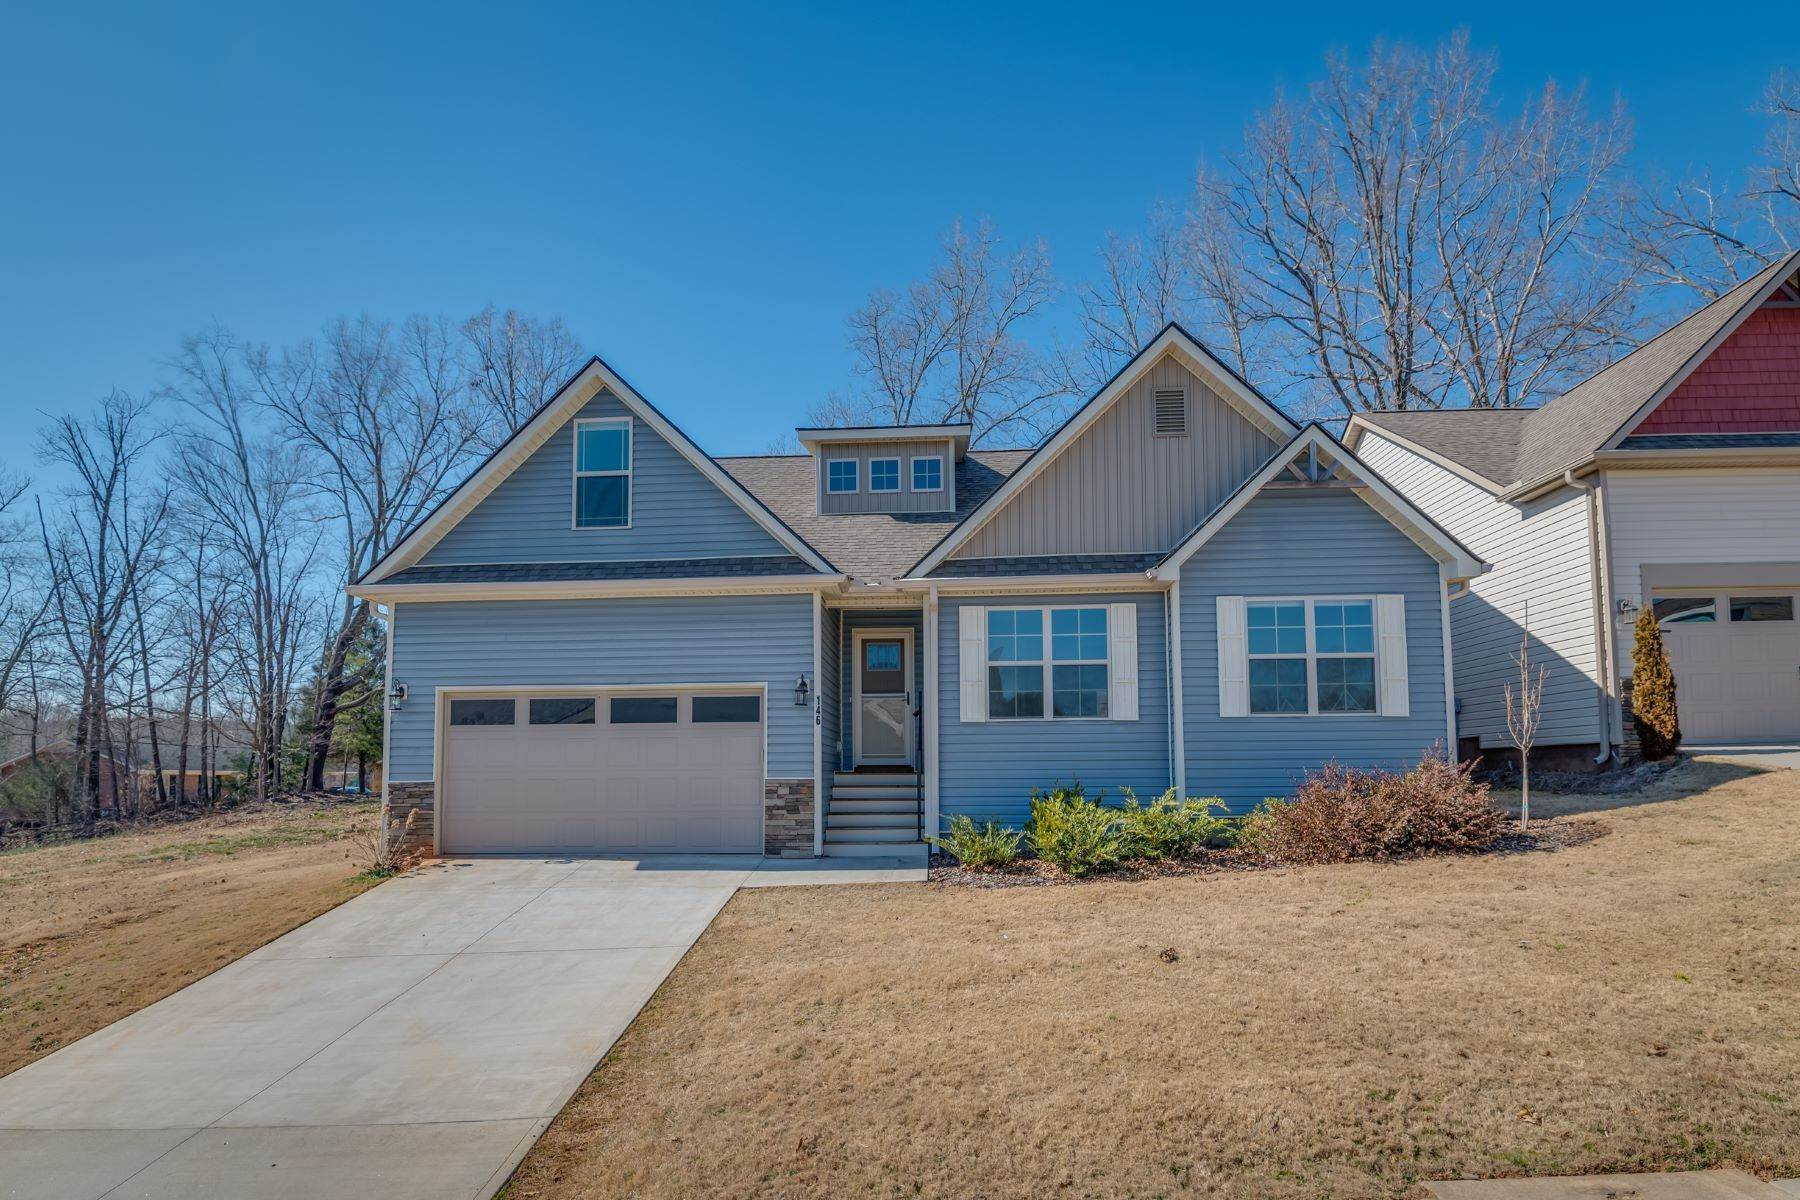 Single Family Homes for Sale at 146 Page Creek Boulevard, Landrum, SC 29356 Landrum, SC 29356